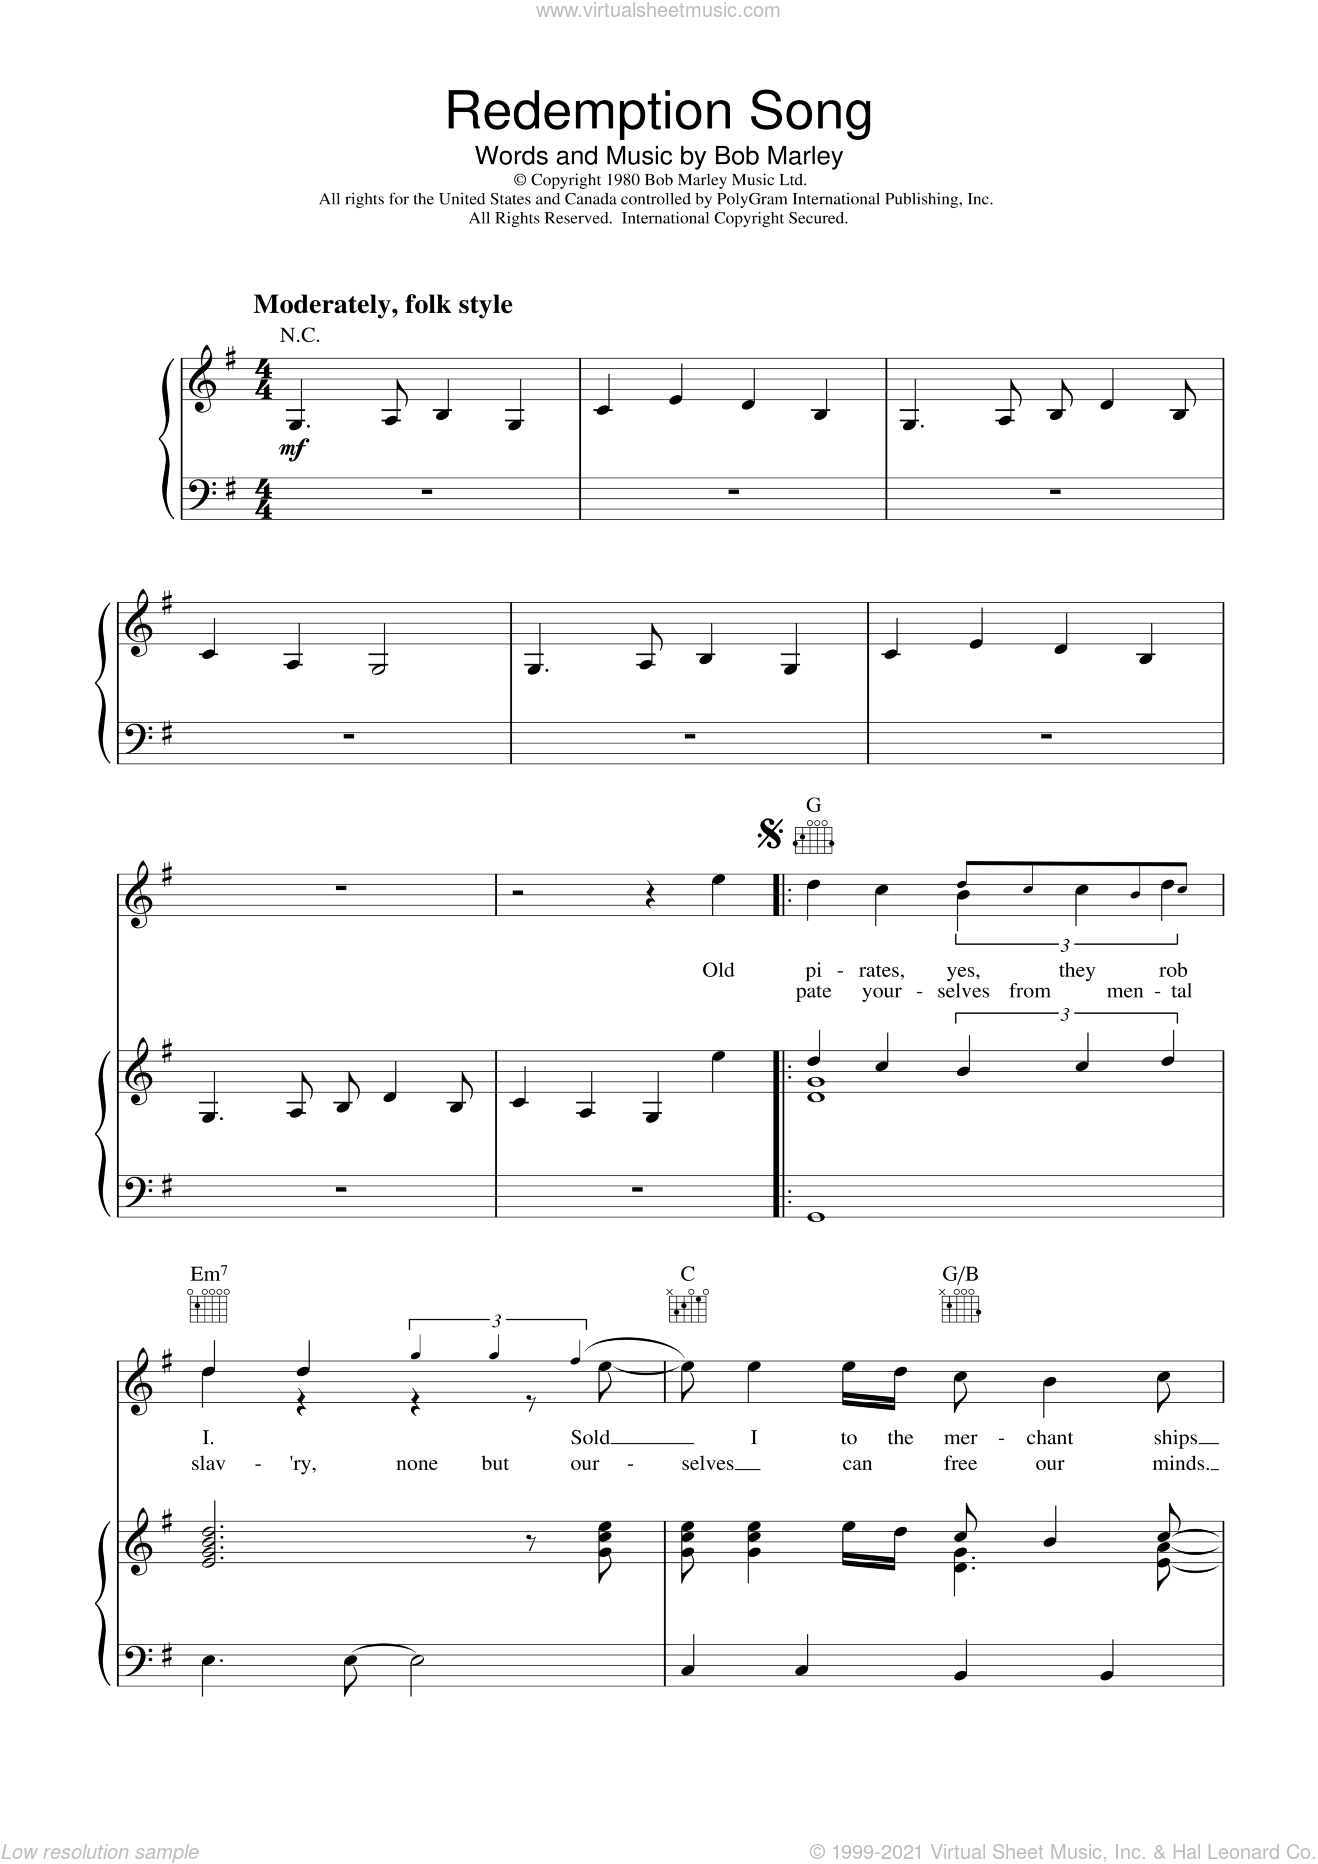 Redemption Song sheet music for voice, piano or guitar by Bob Marley, intermediate skill level